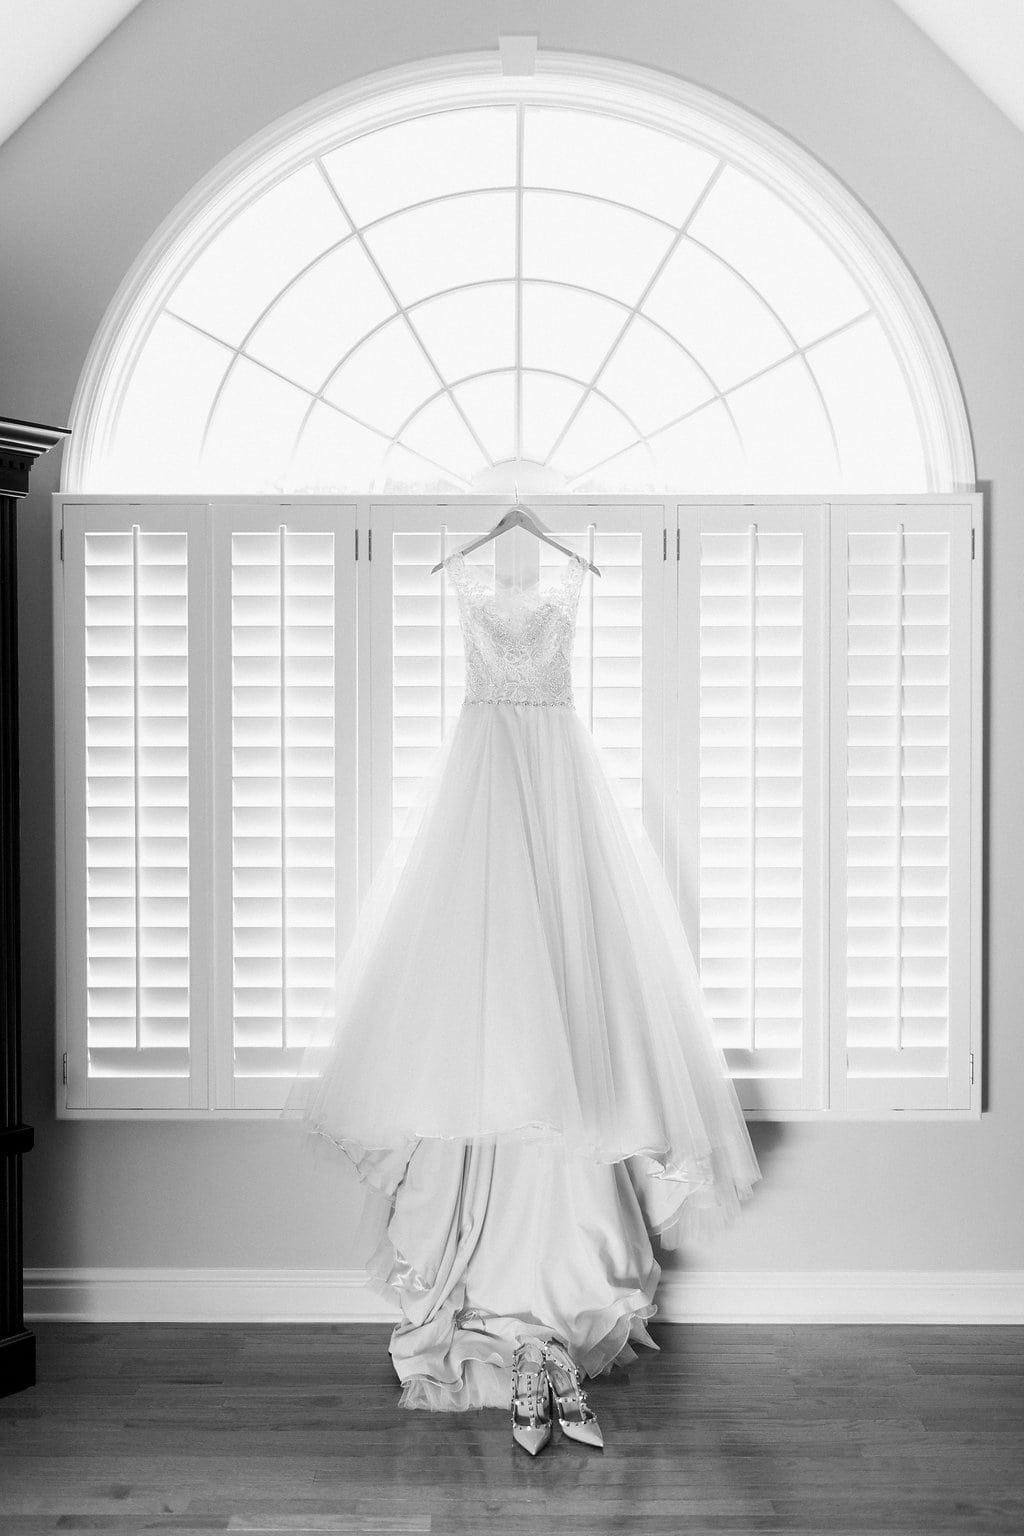 Maggie Sottero Designs Wedding Dress Black and White Photograph